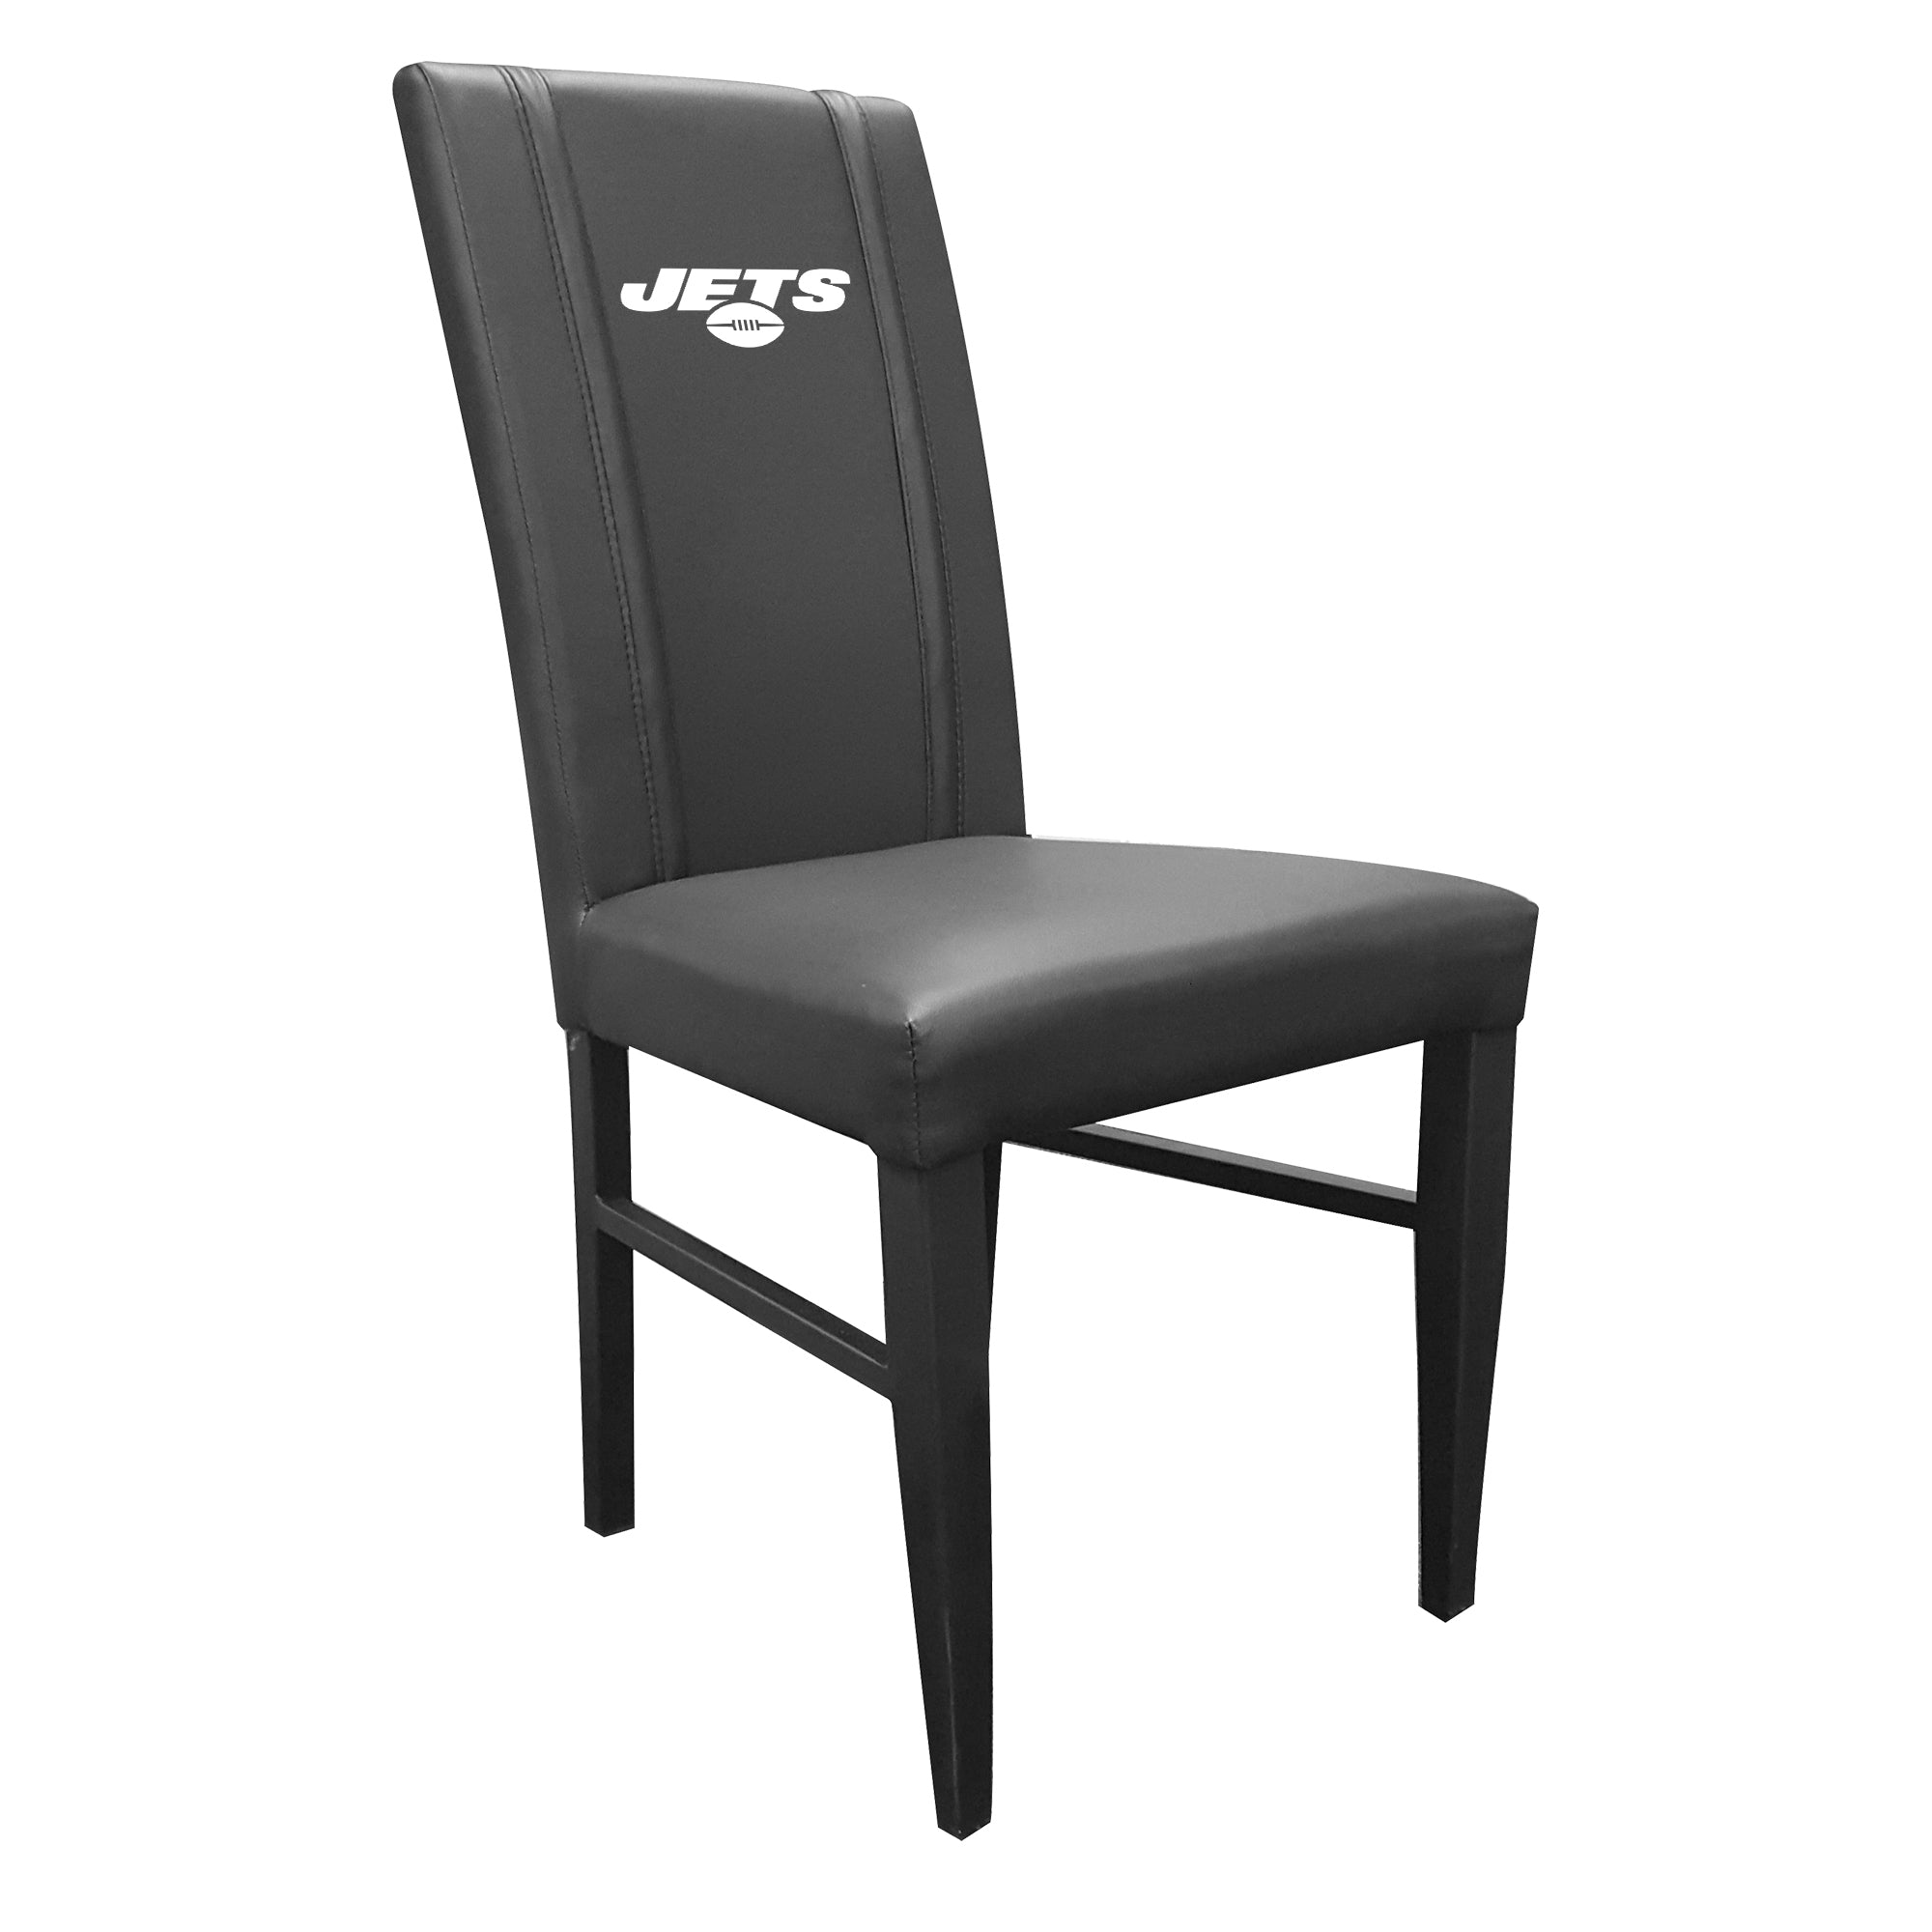 Side Chair 2000 with  New York Jets Secondary Logo Set of 2